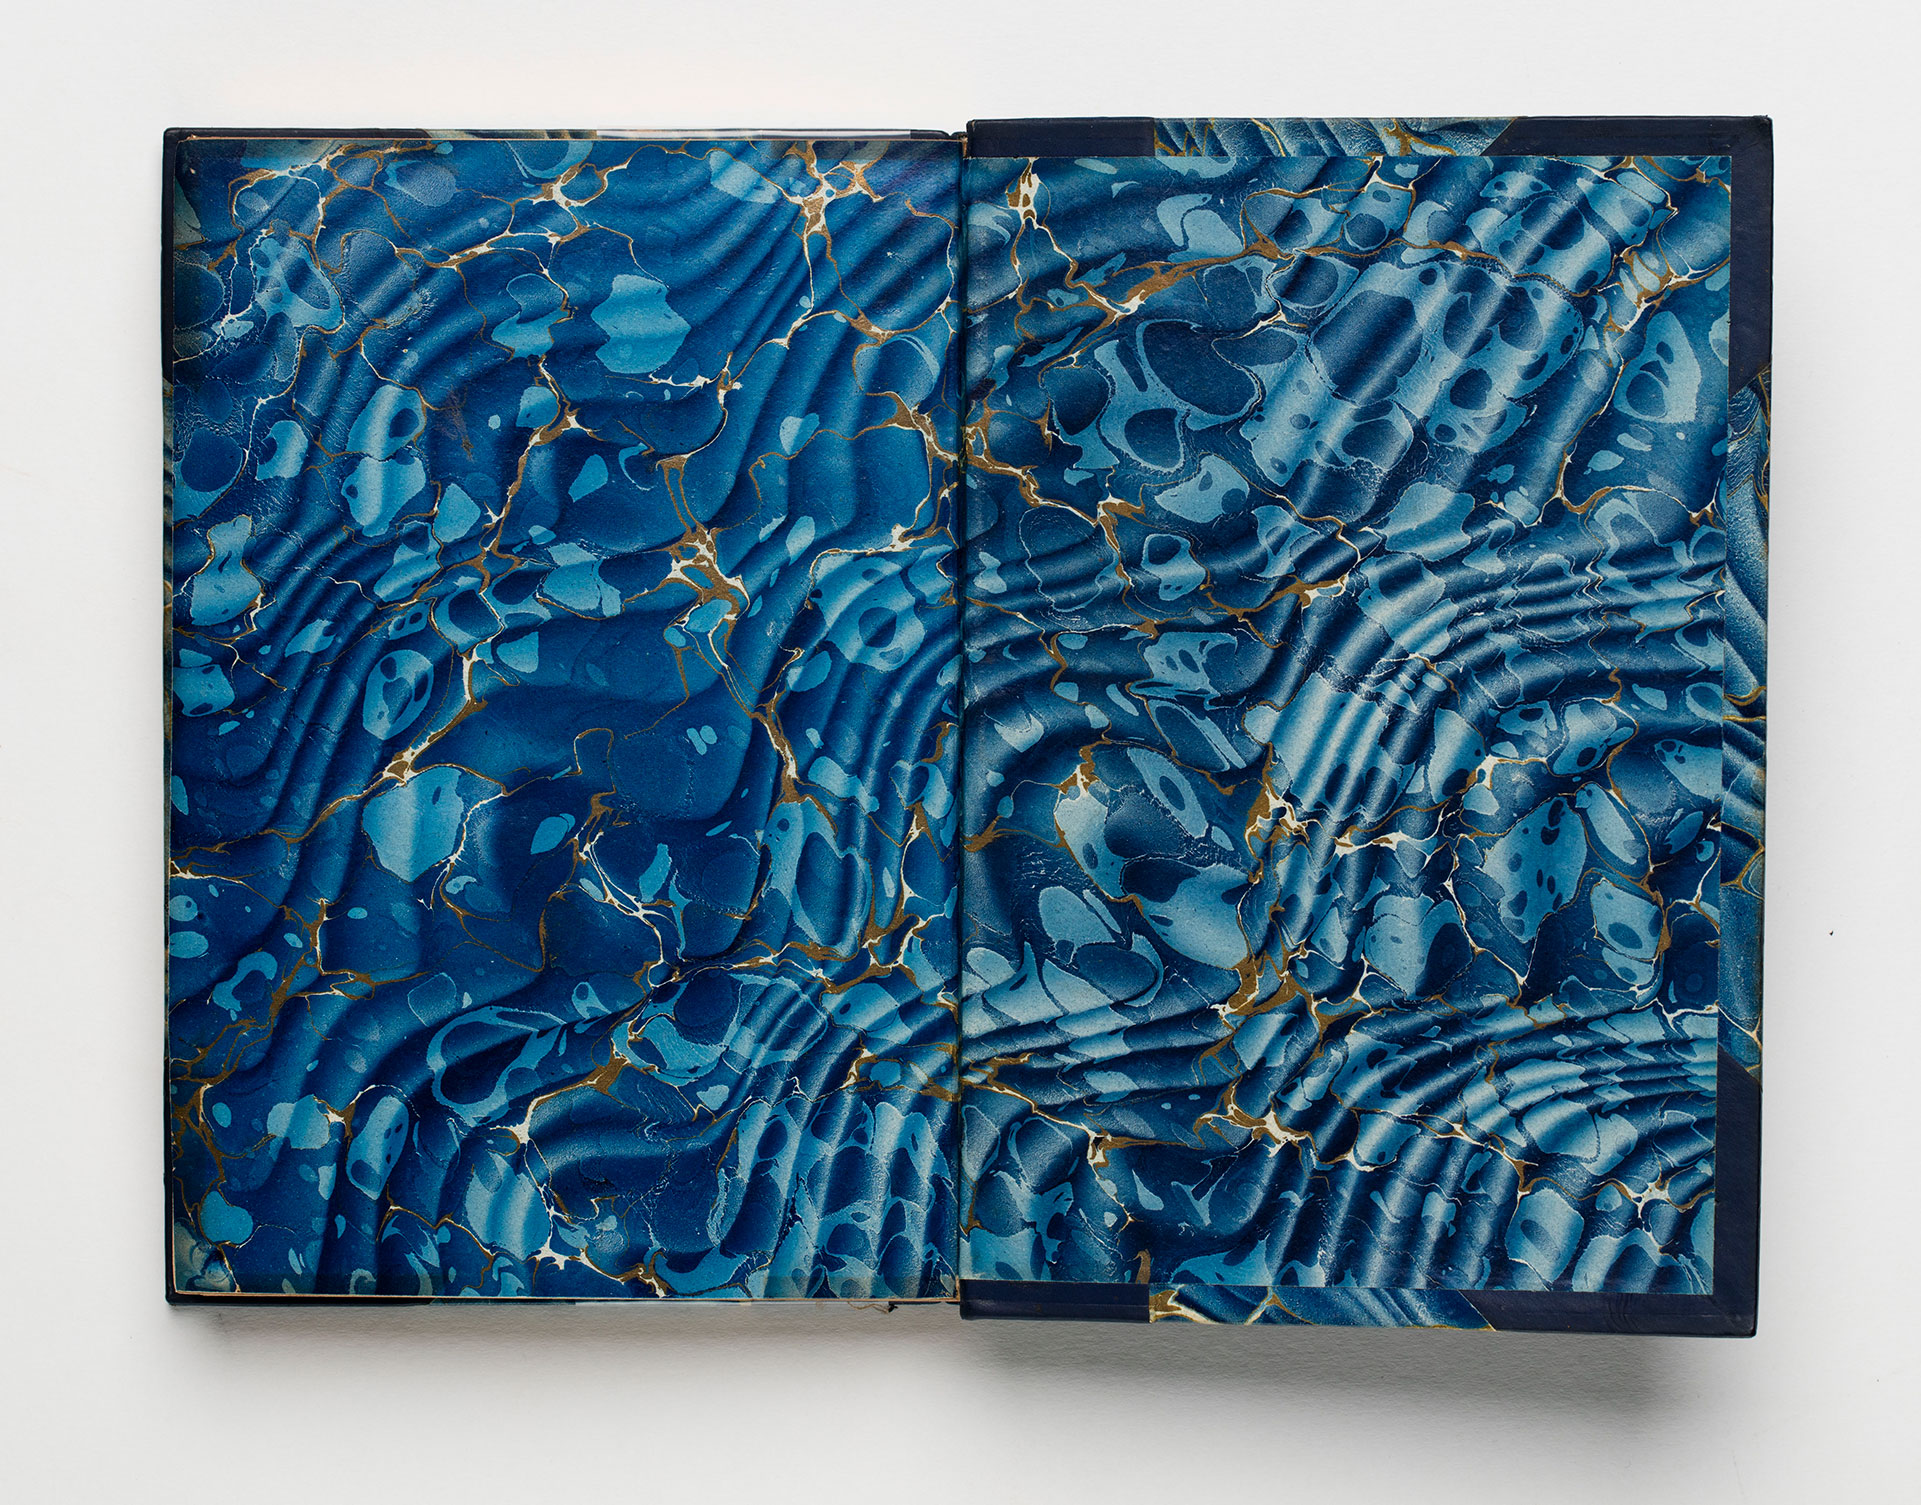 An endpaper patterned in ripples of blue and gold.